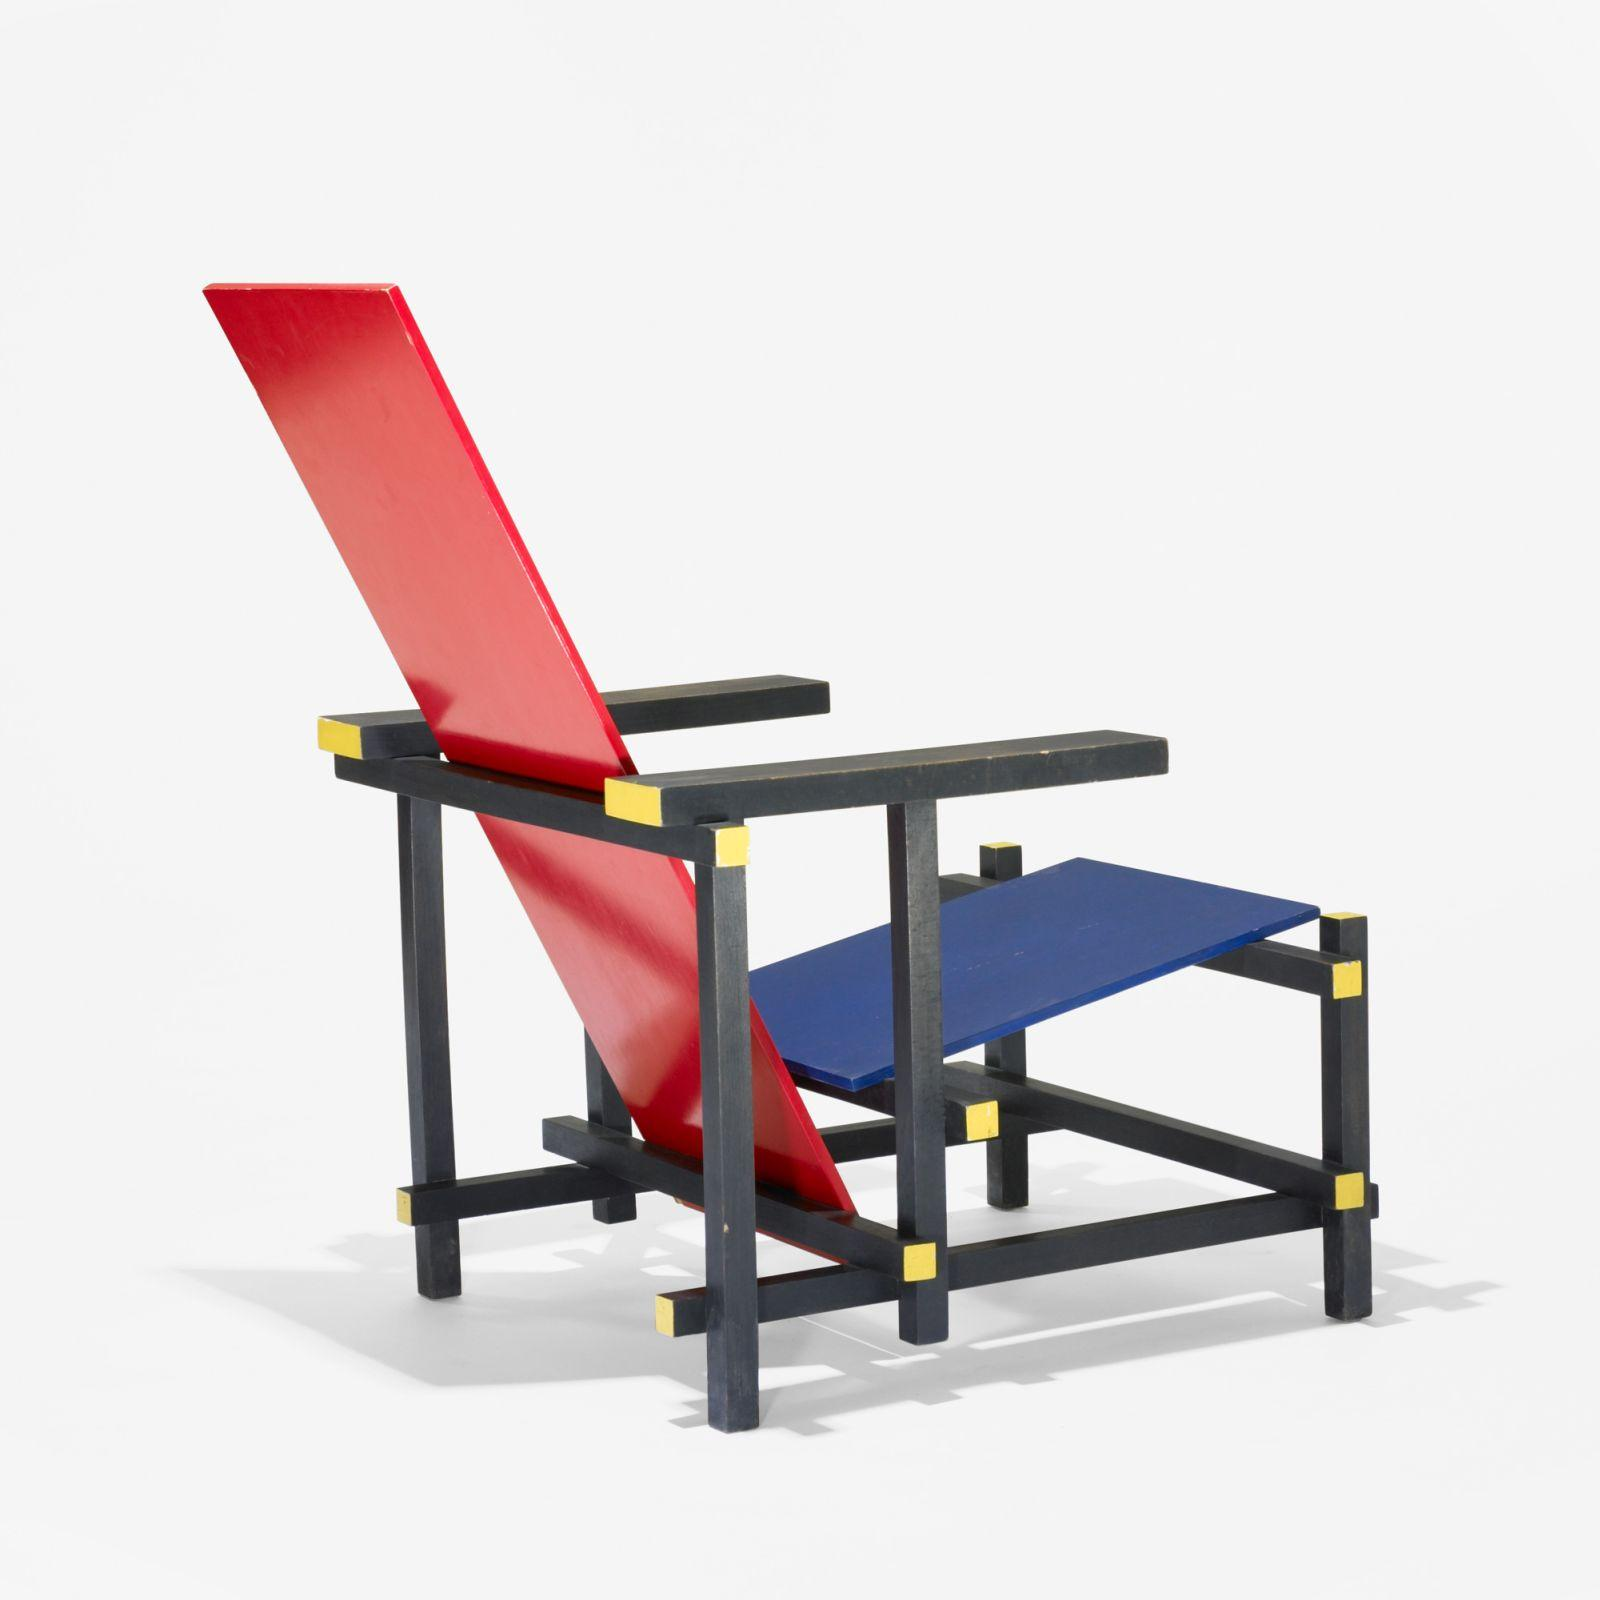 Gerrit rietveld chair for sale - Gerrit Rietveld Chair For Sale